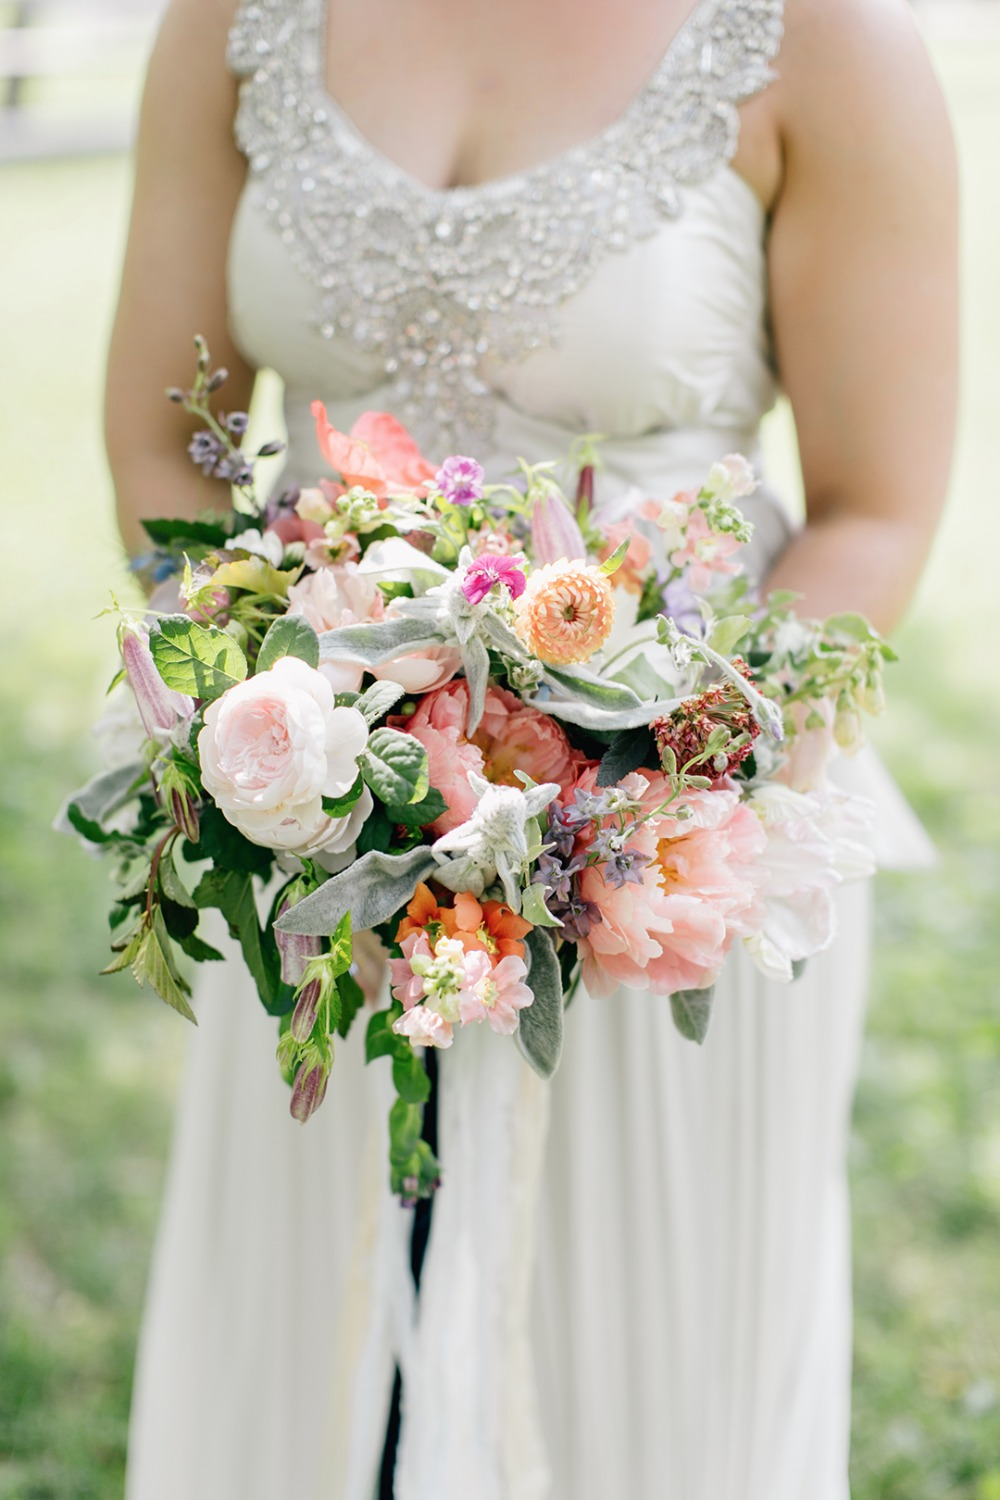 Colorful chic bouquet